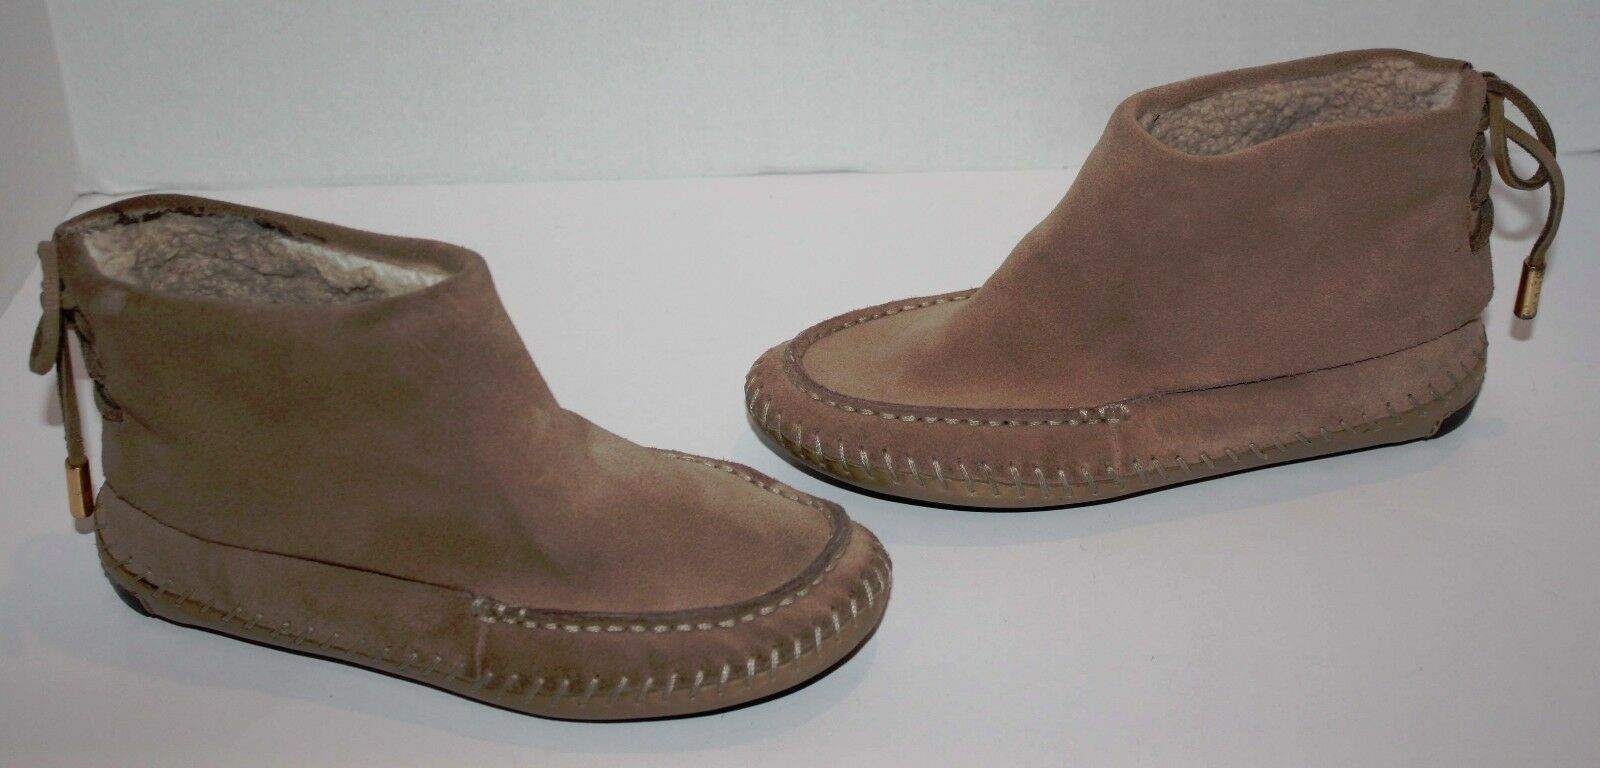 femmes Tory Burch Sand marron Suede Leather Moccasin Ankle démarrageies Taille 6